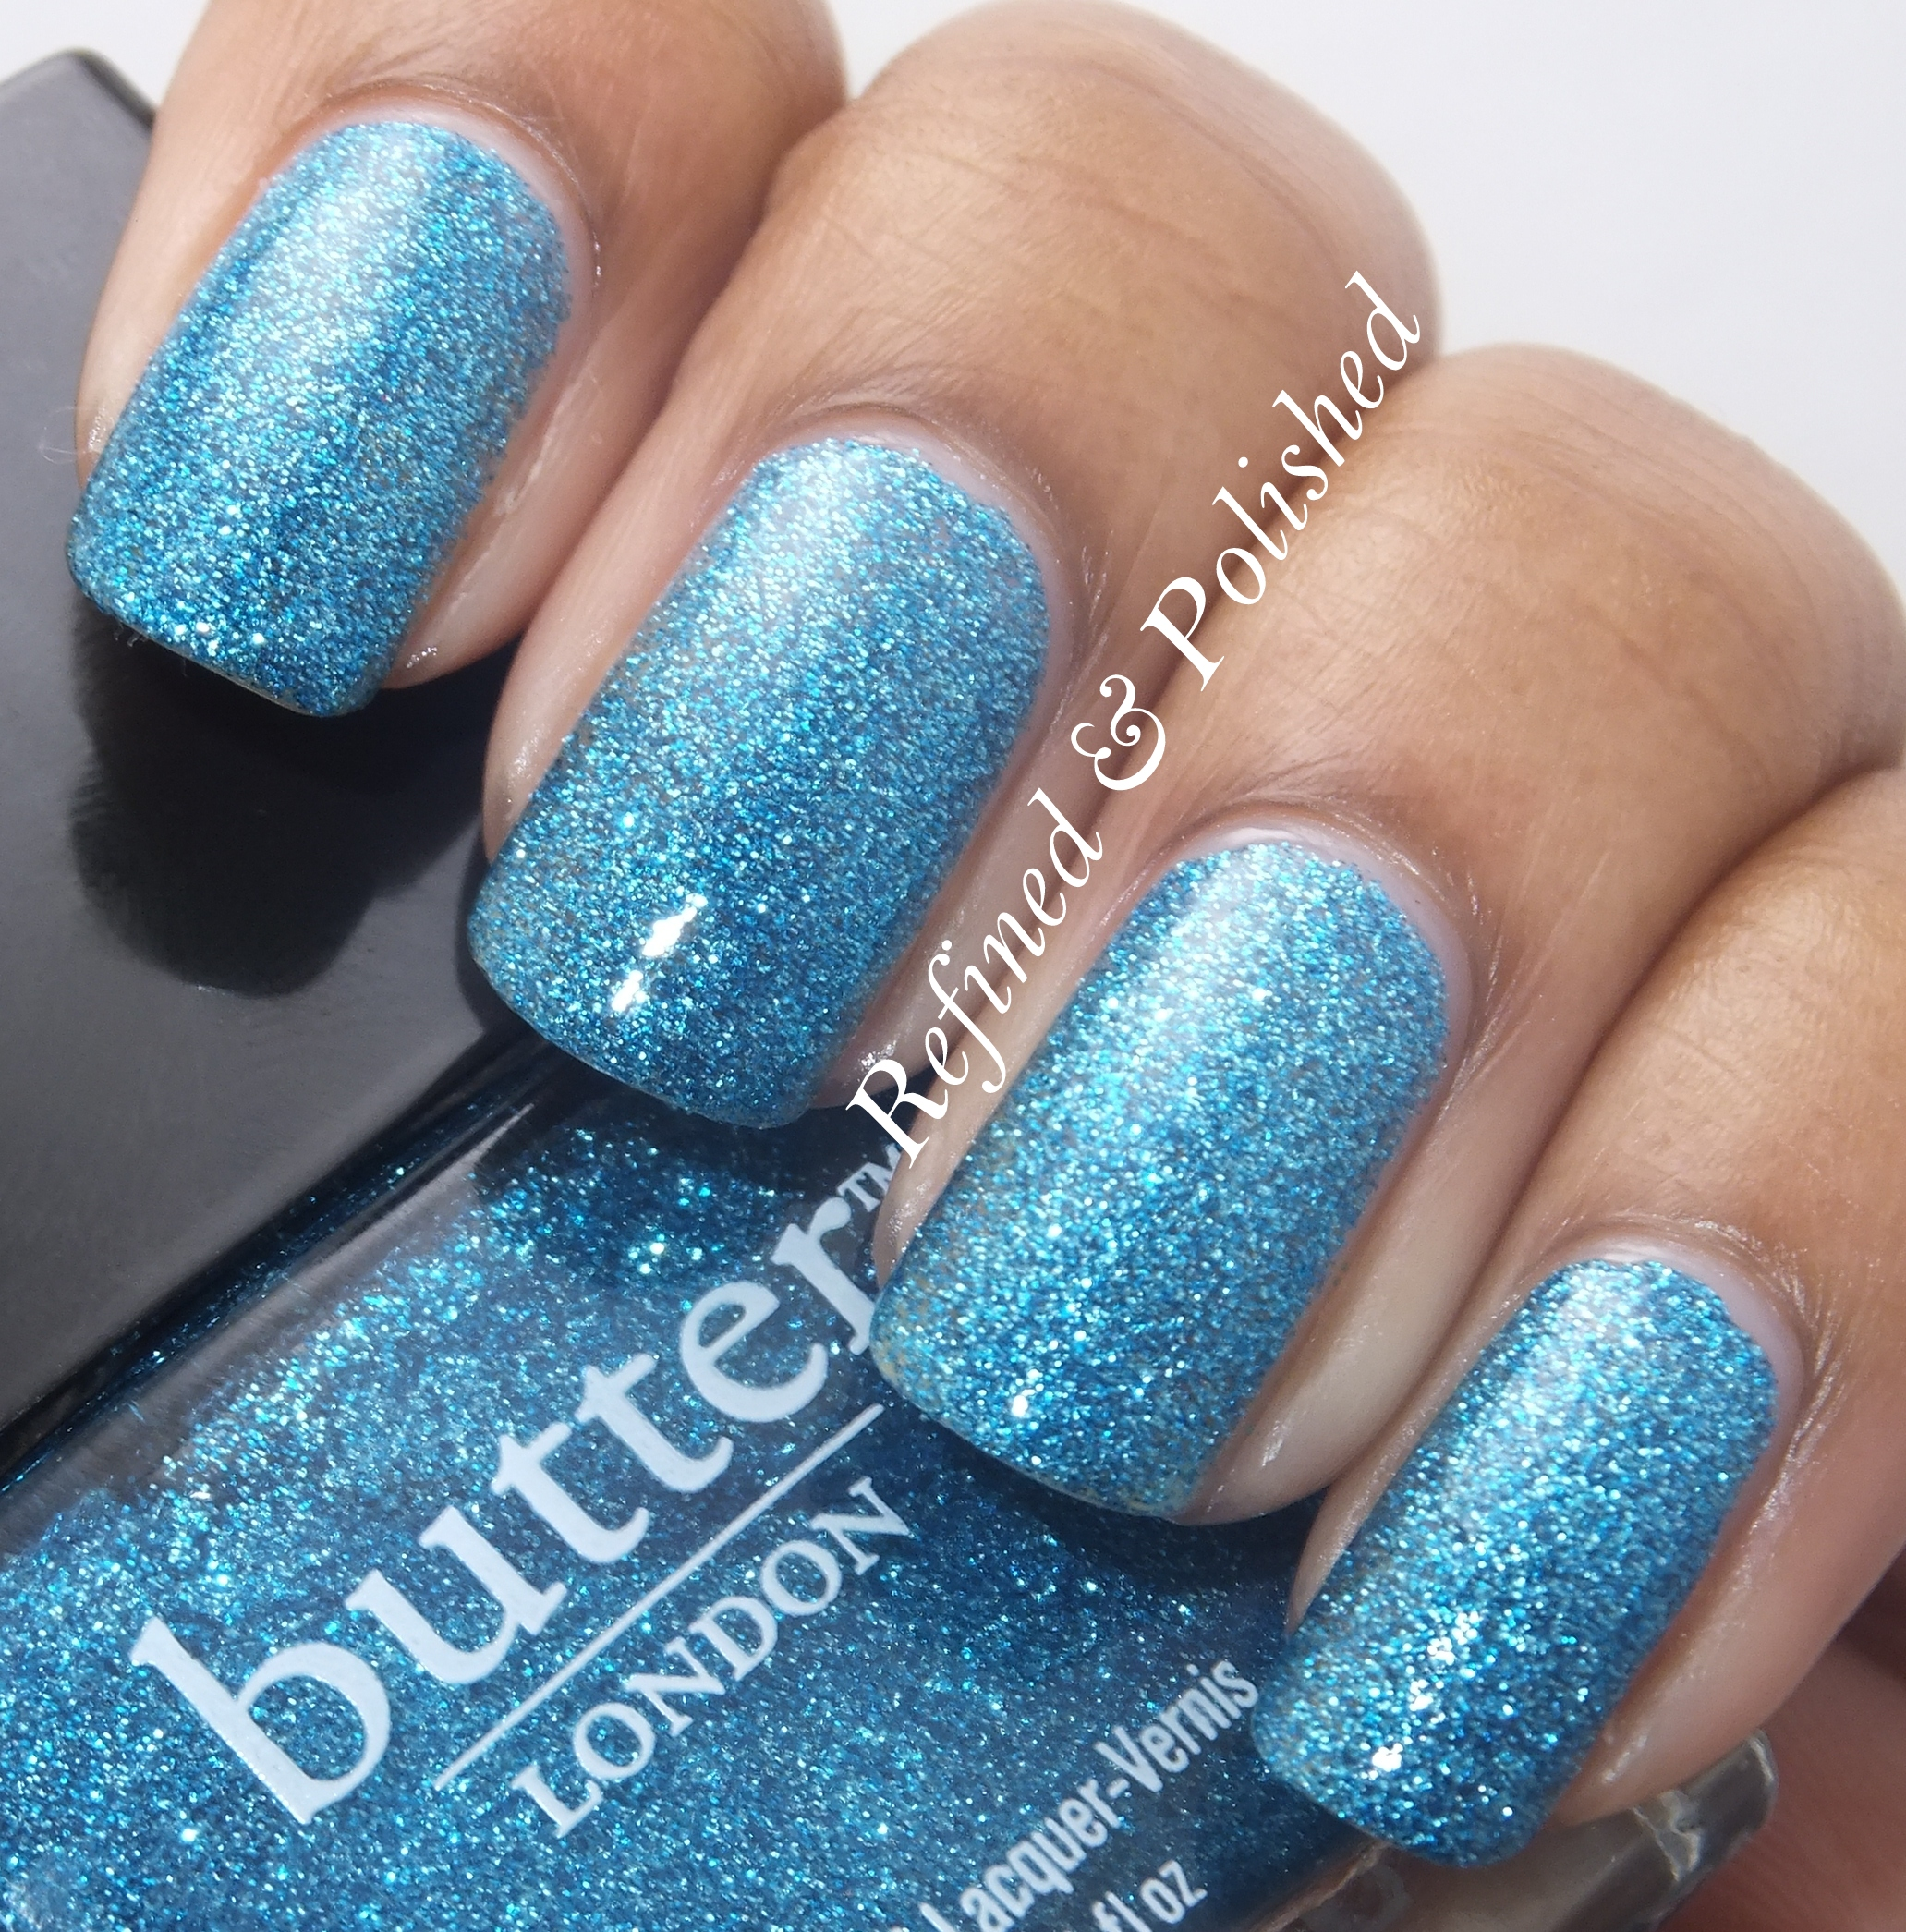 Butter LONDON Scallywag - Refined and Polished